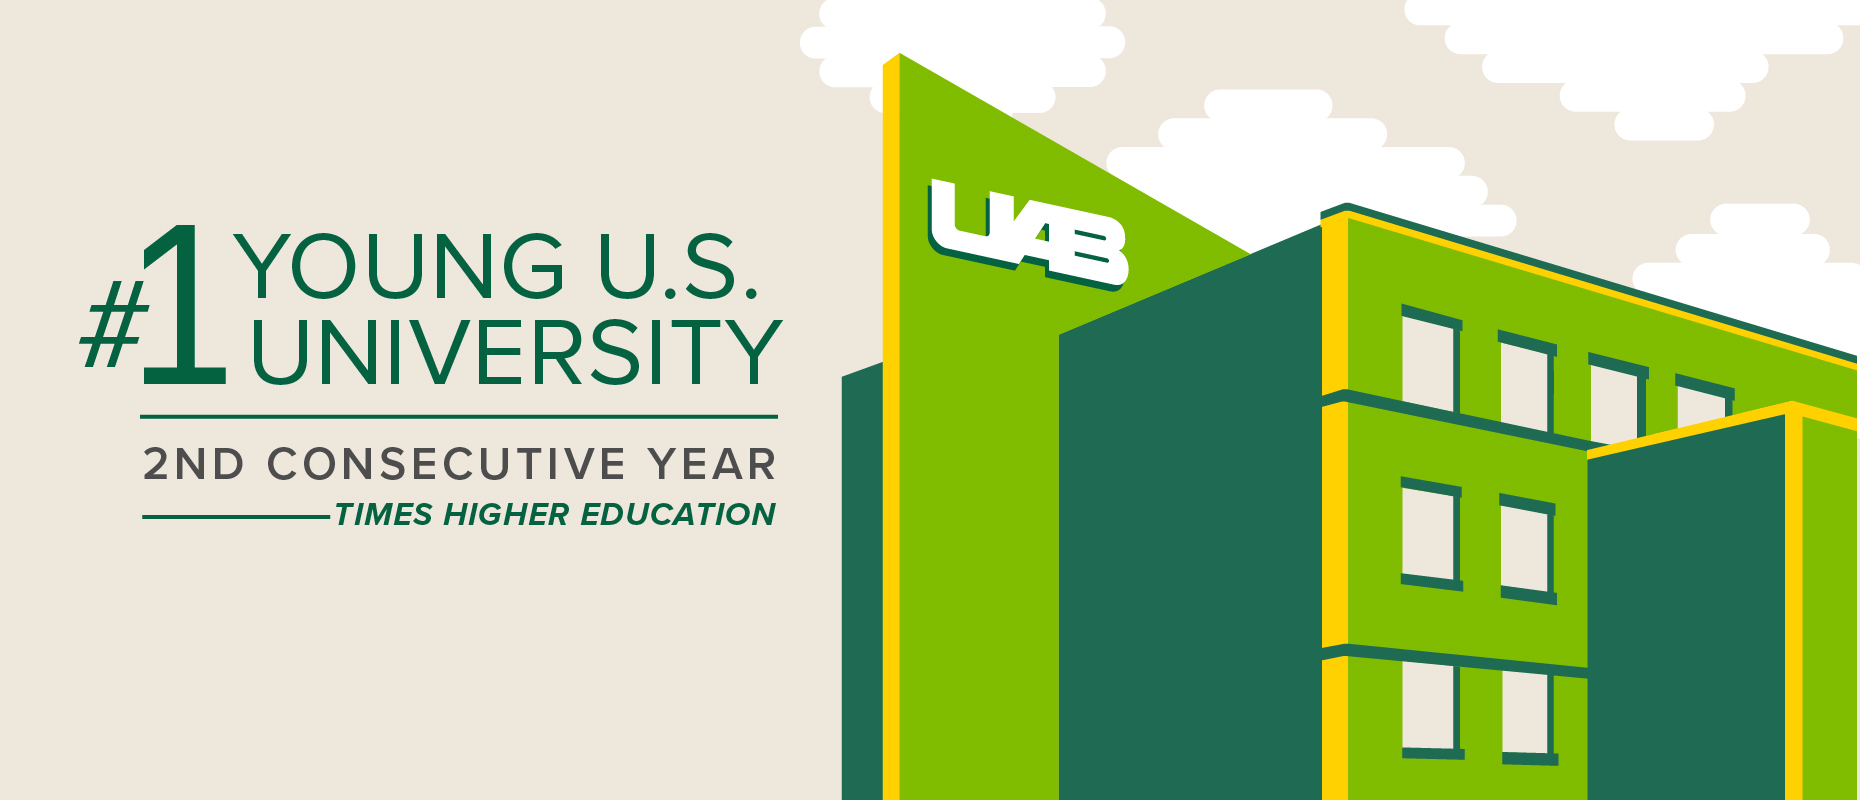 UAB named #1 young U.S. university for the second consecutive year